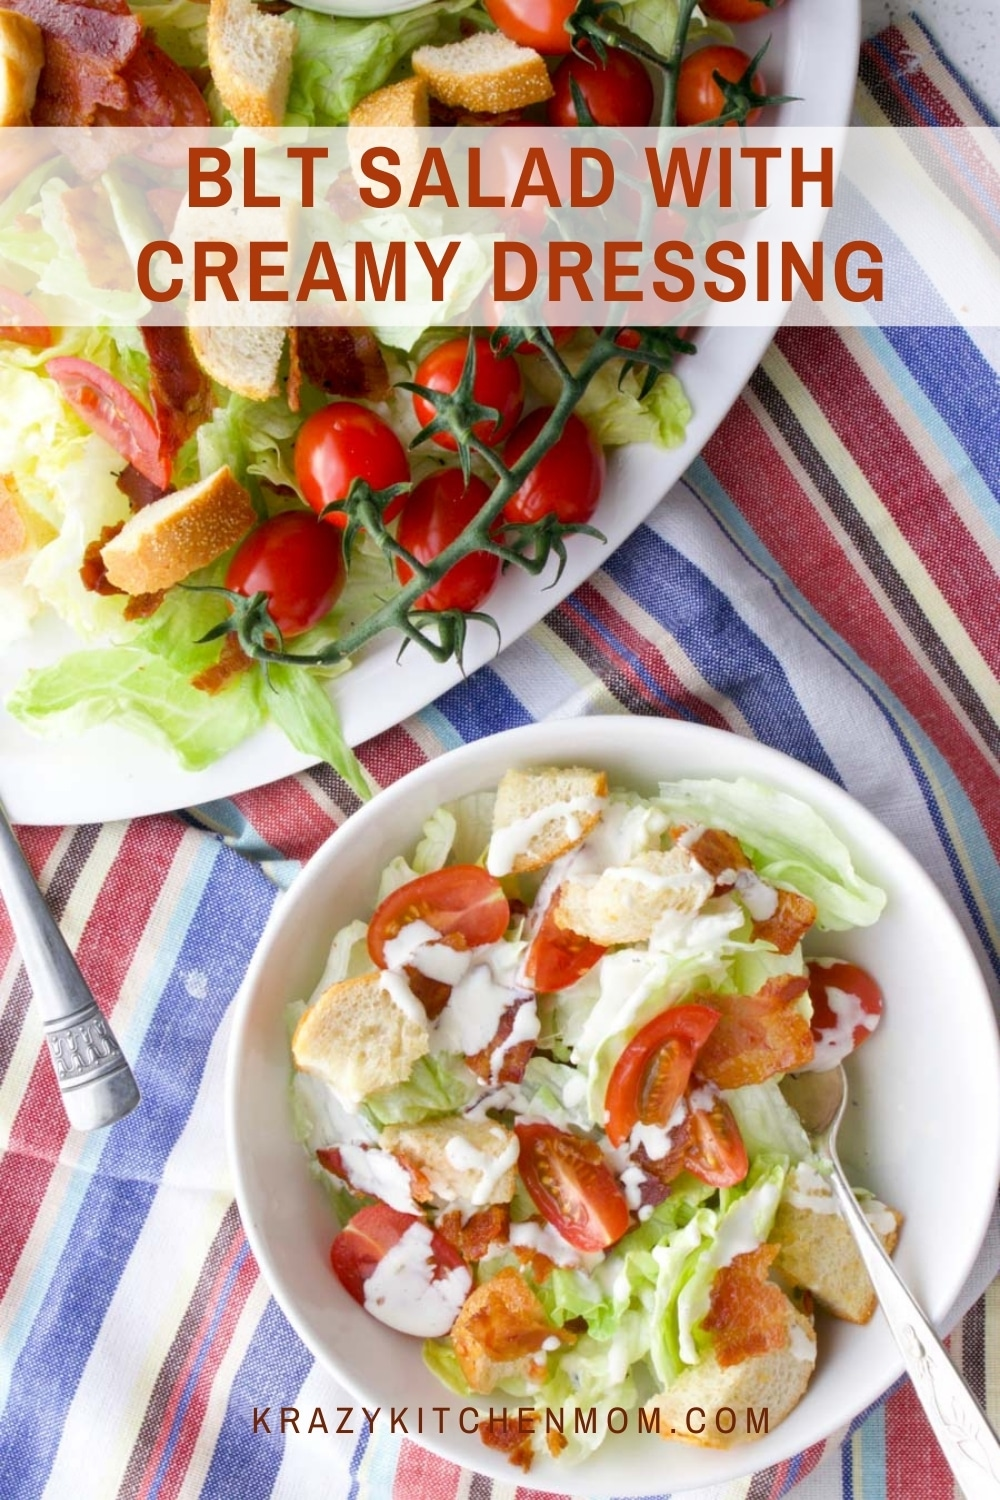 The classic flavor combination of a bacon, lettuce, and tomato sandwich transformed into a crispy, cold, refreshing salad. via @krazykitchenmom